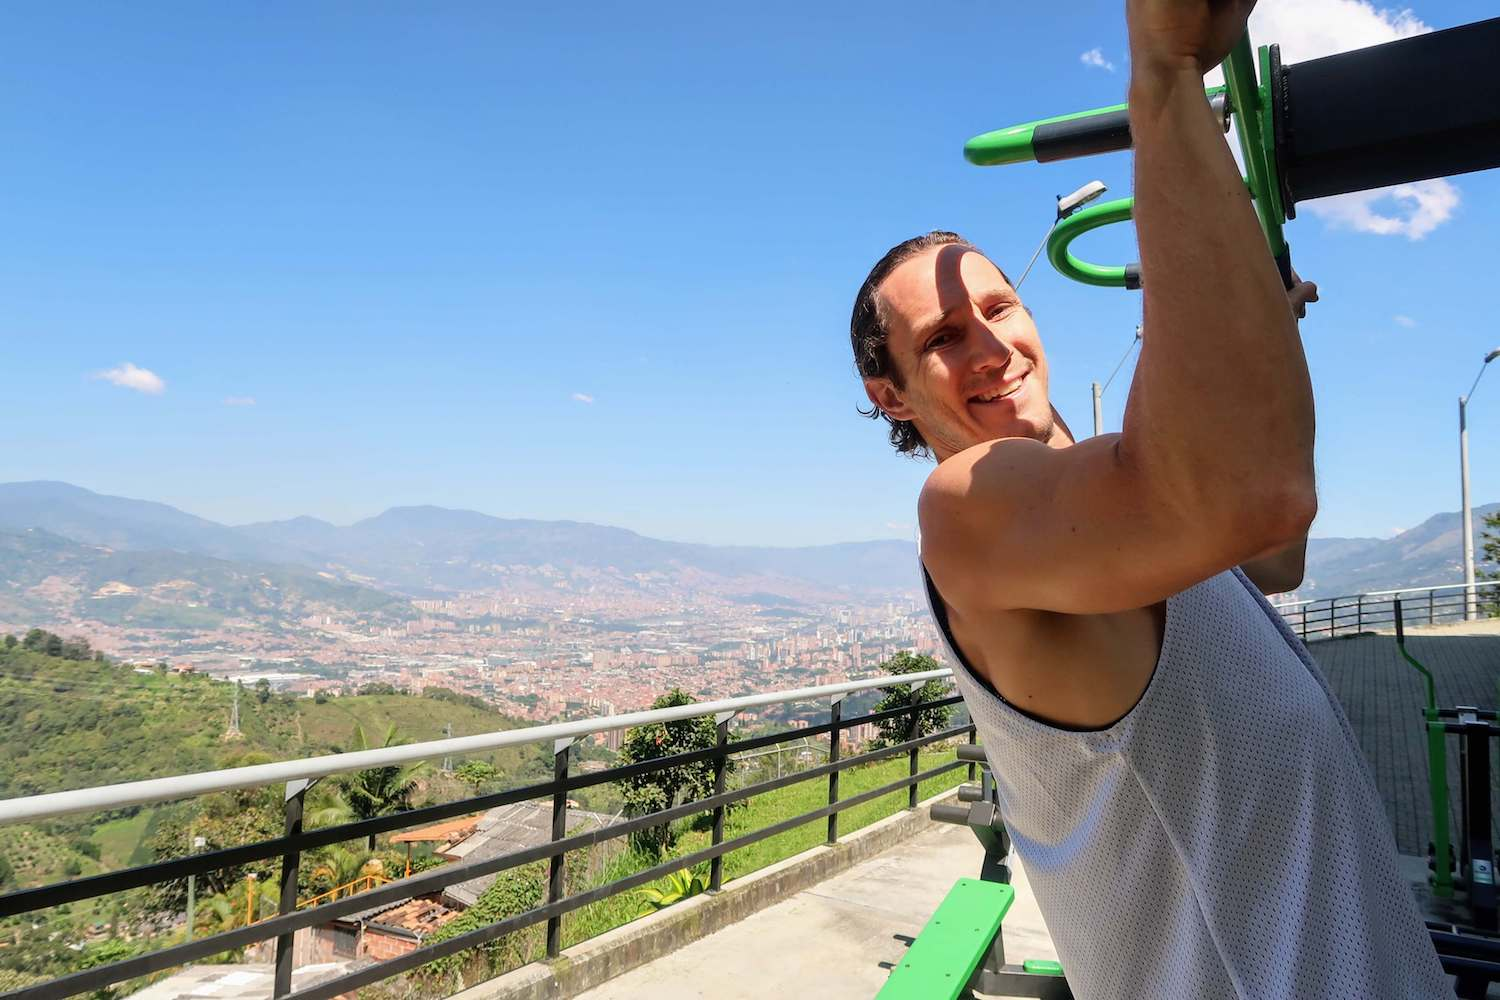 Chris workout out at Arenales viewpoint of Medellin after waterfall hike